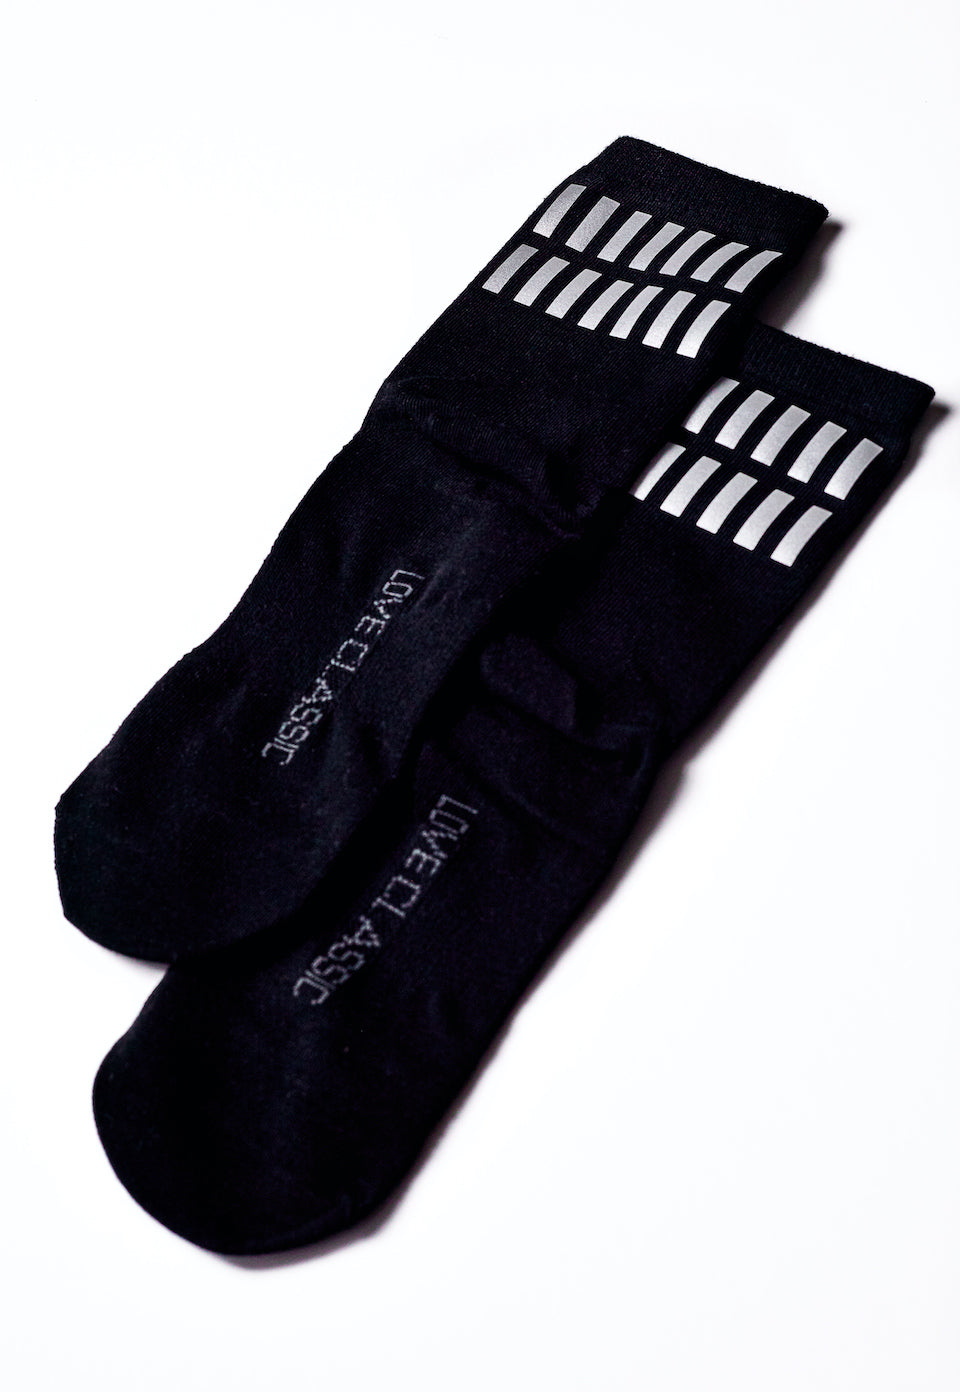 Reflective Athletic Crew Socks | Love Classic